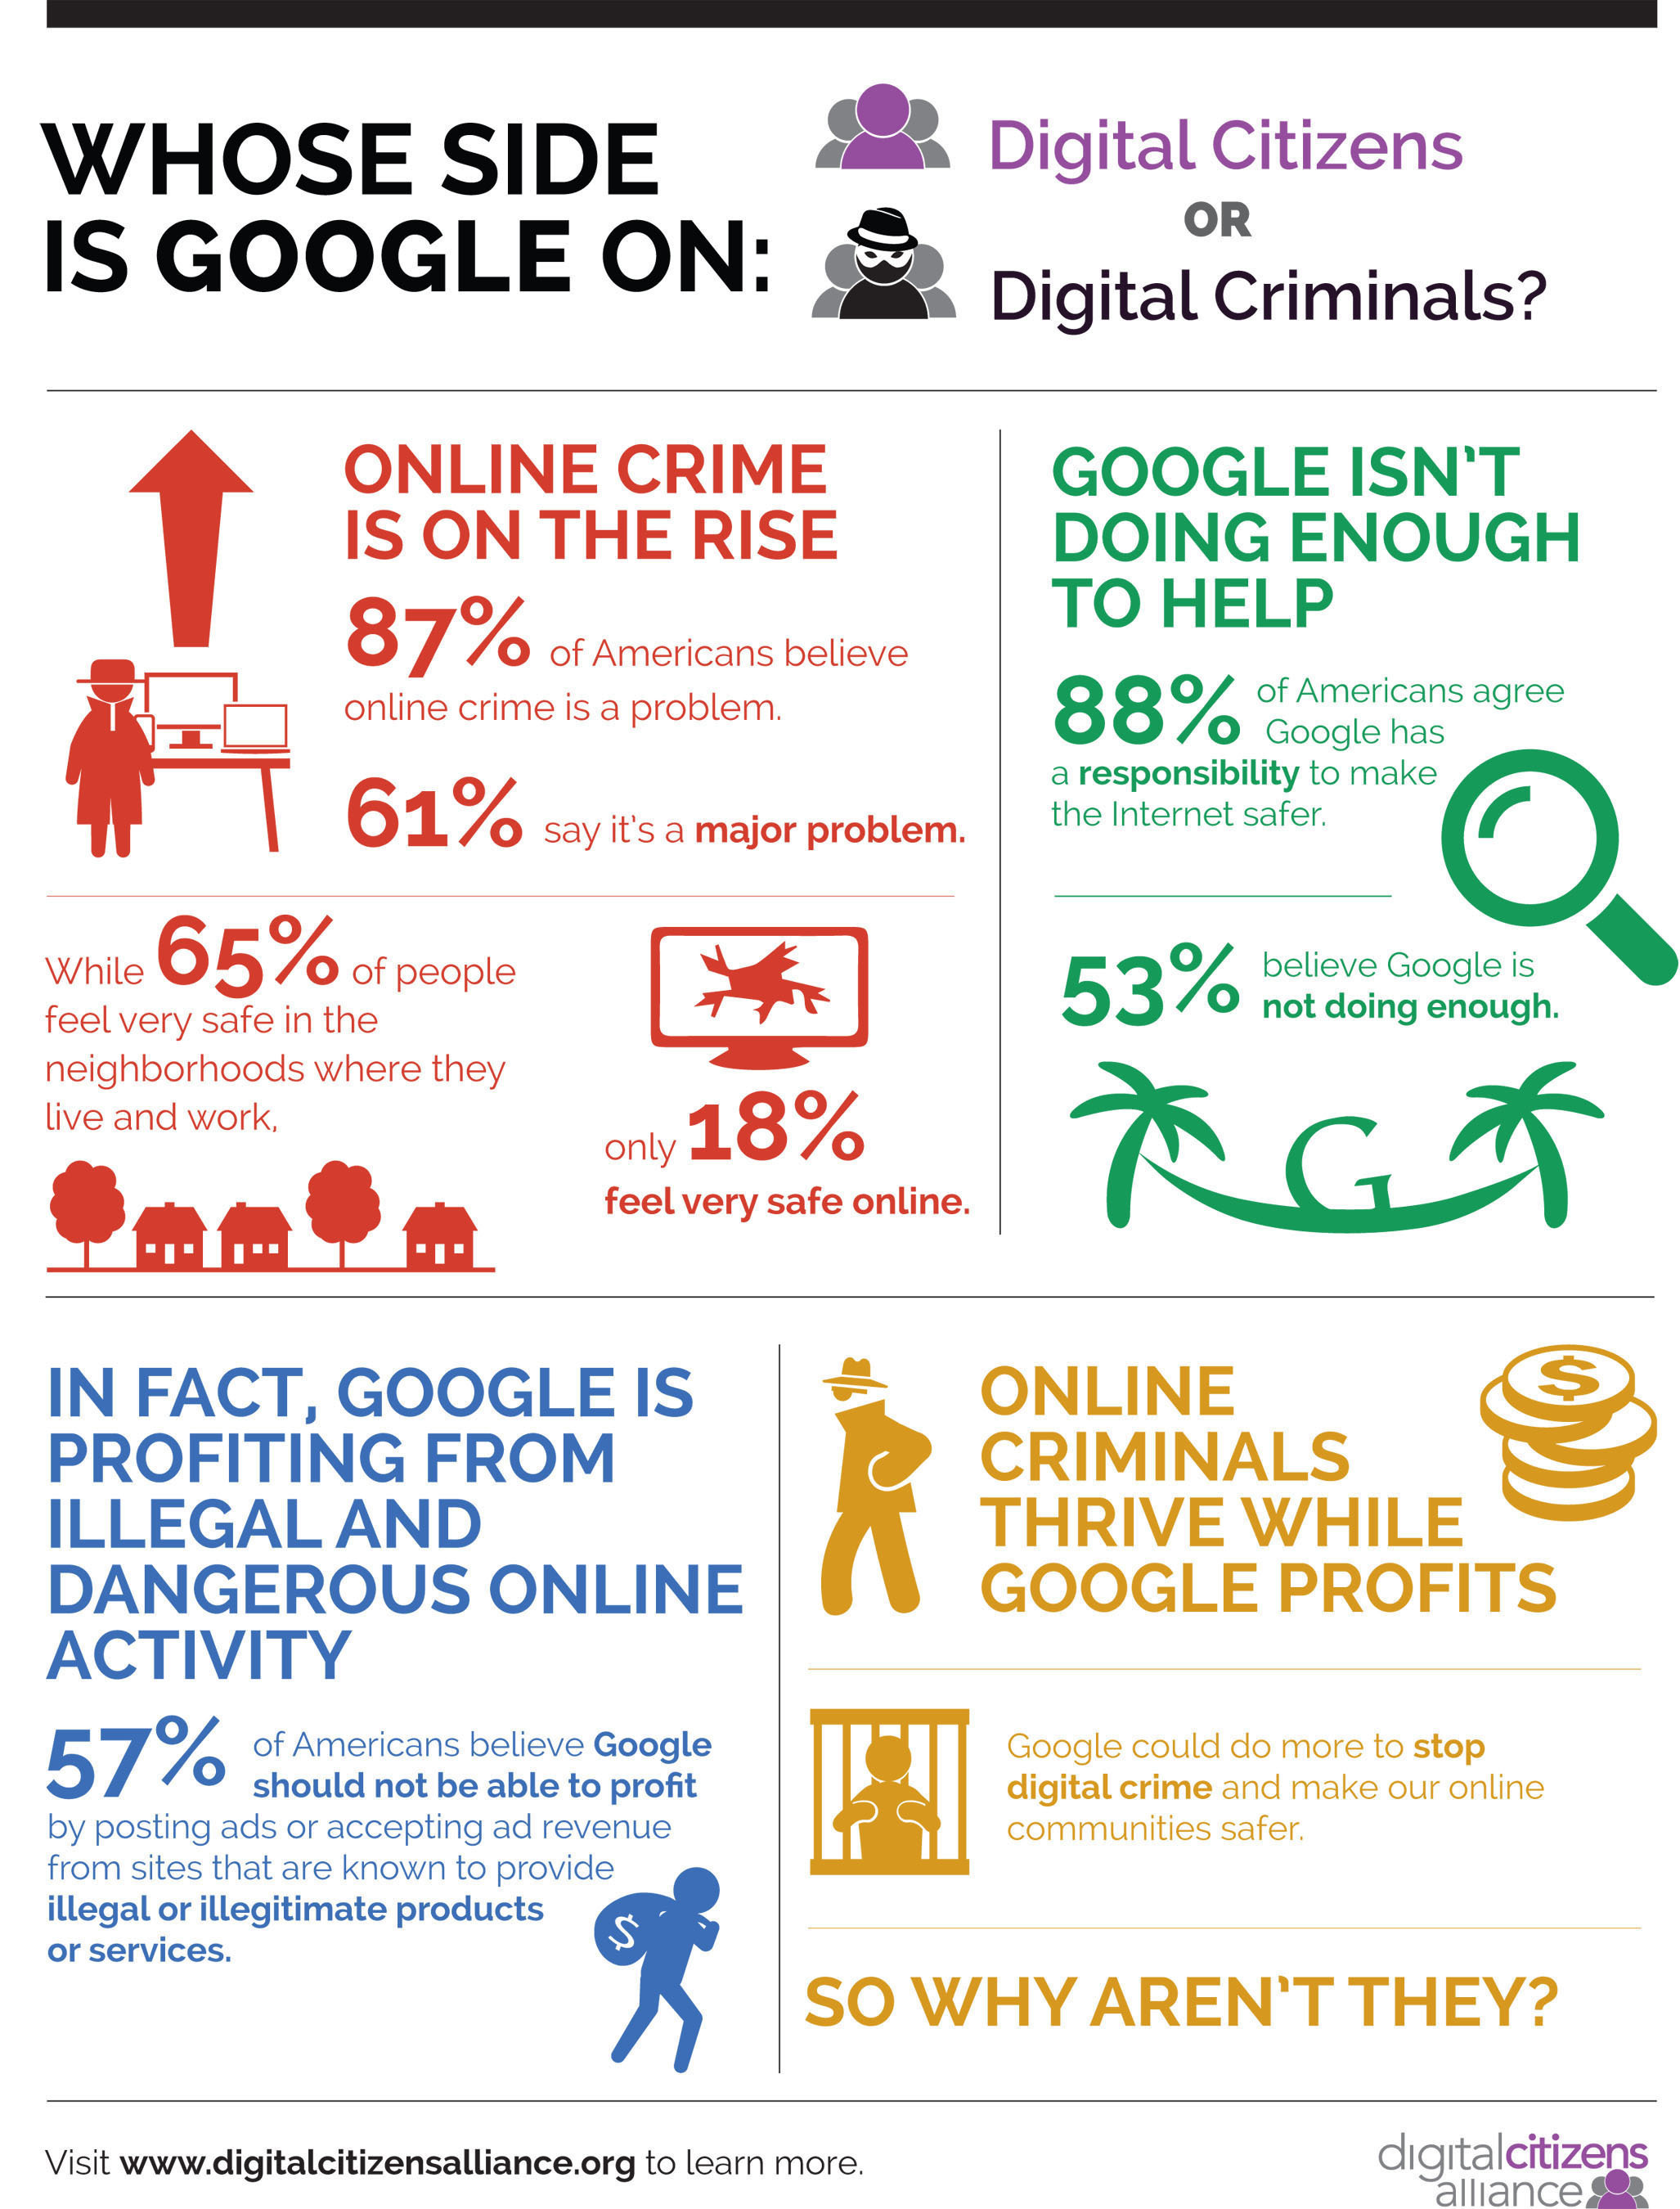 Digital Citizens Alliance Calls On Google To Stop Profiting From Illegal Activities; Investigation